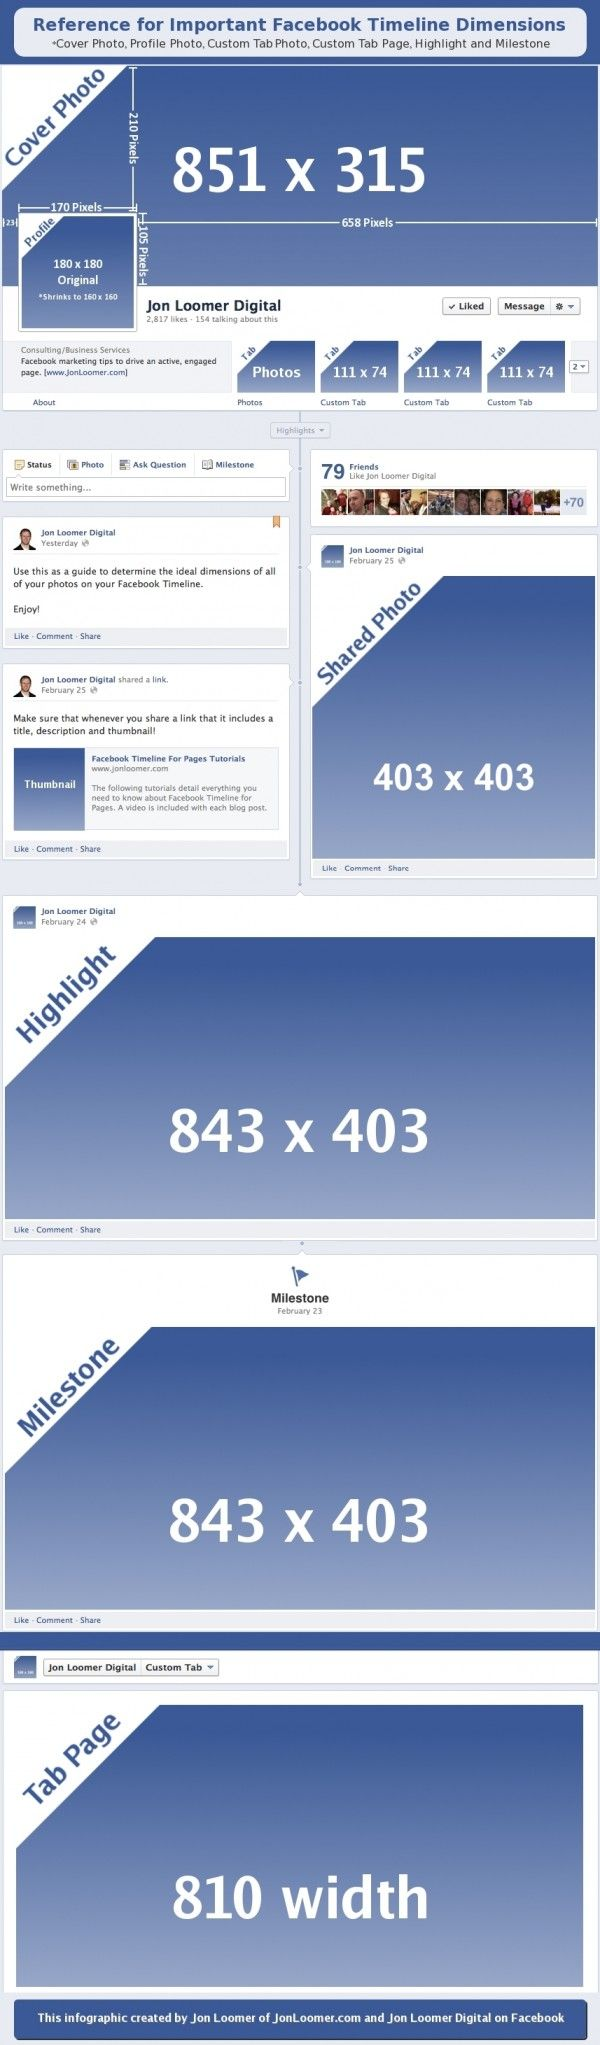 Reference for Important Facebook Timeline Dimensions